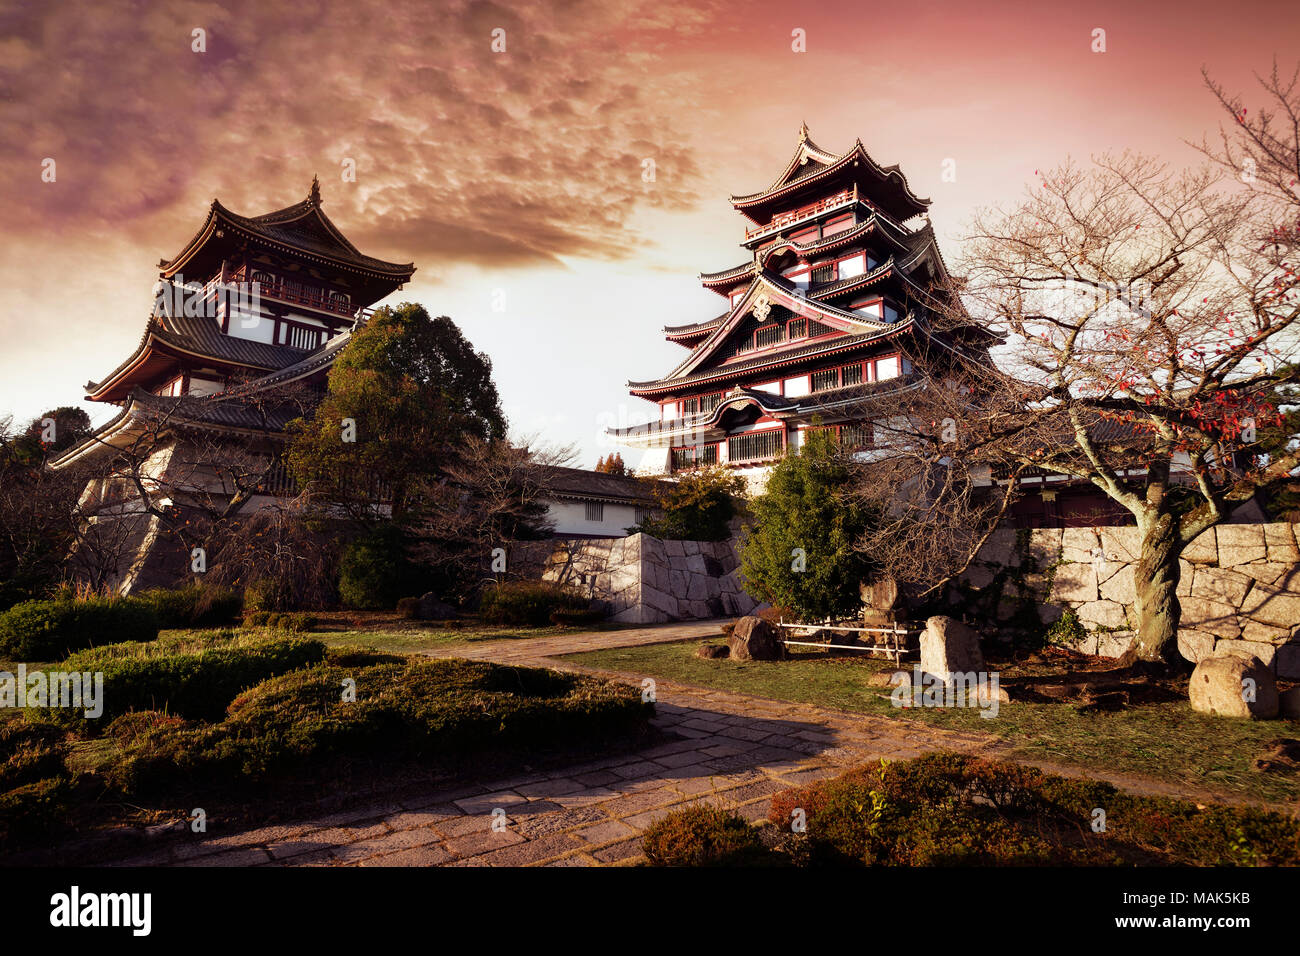 Fushimi Castle, Fushimi-jo in Kyoto, also known as Fushimi-Momoyama Castle or Momoyama Castle famous for its golden tea room. Colorful red sunset autu Stock Photo